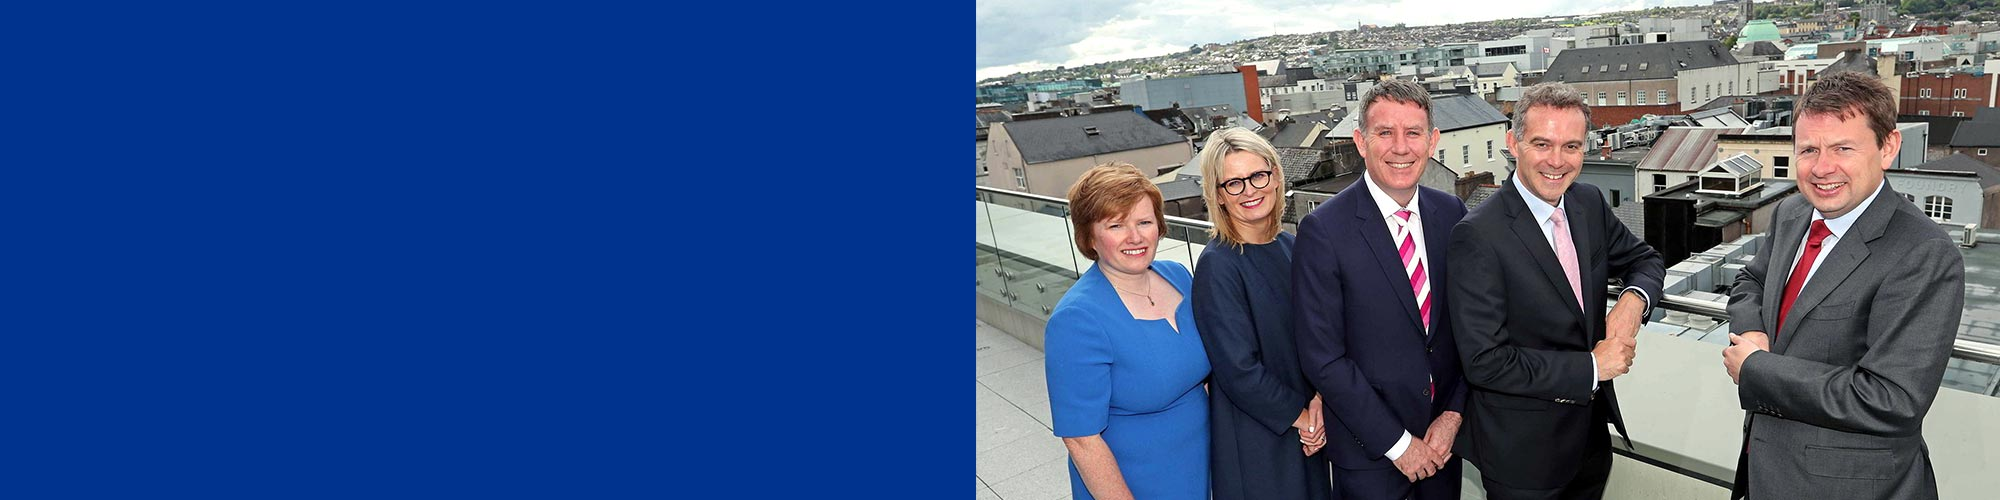 At KPMG, we're proud to be part of the success story of this great city.